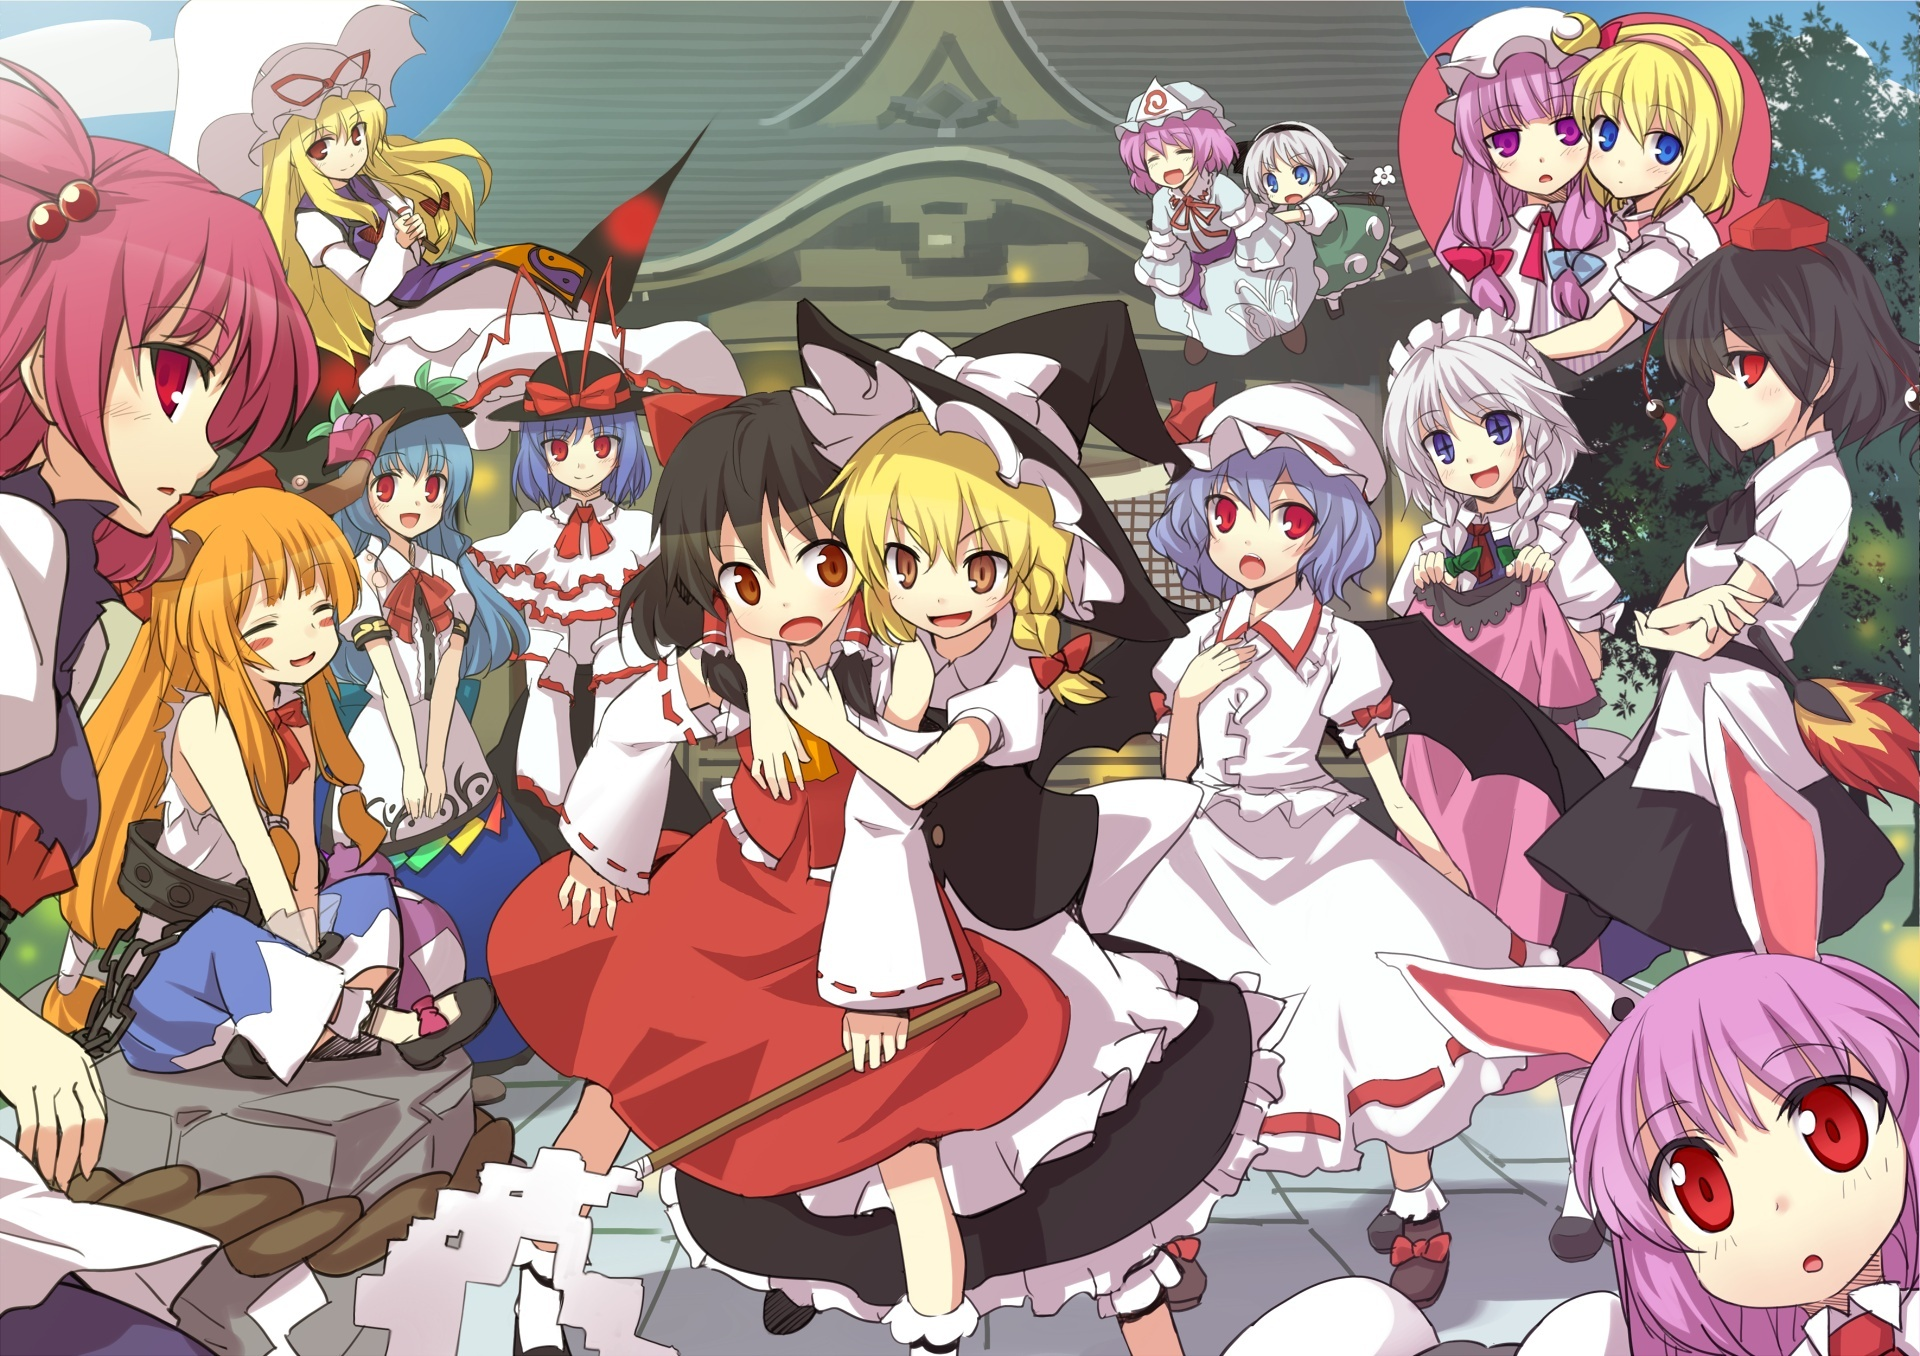 4 Pics 1 Anime Characters : Aporte touhou anime project mp mega